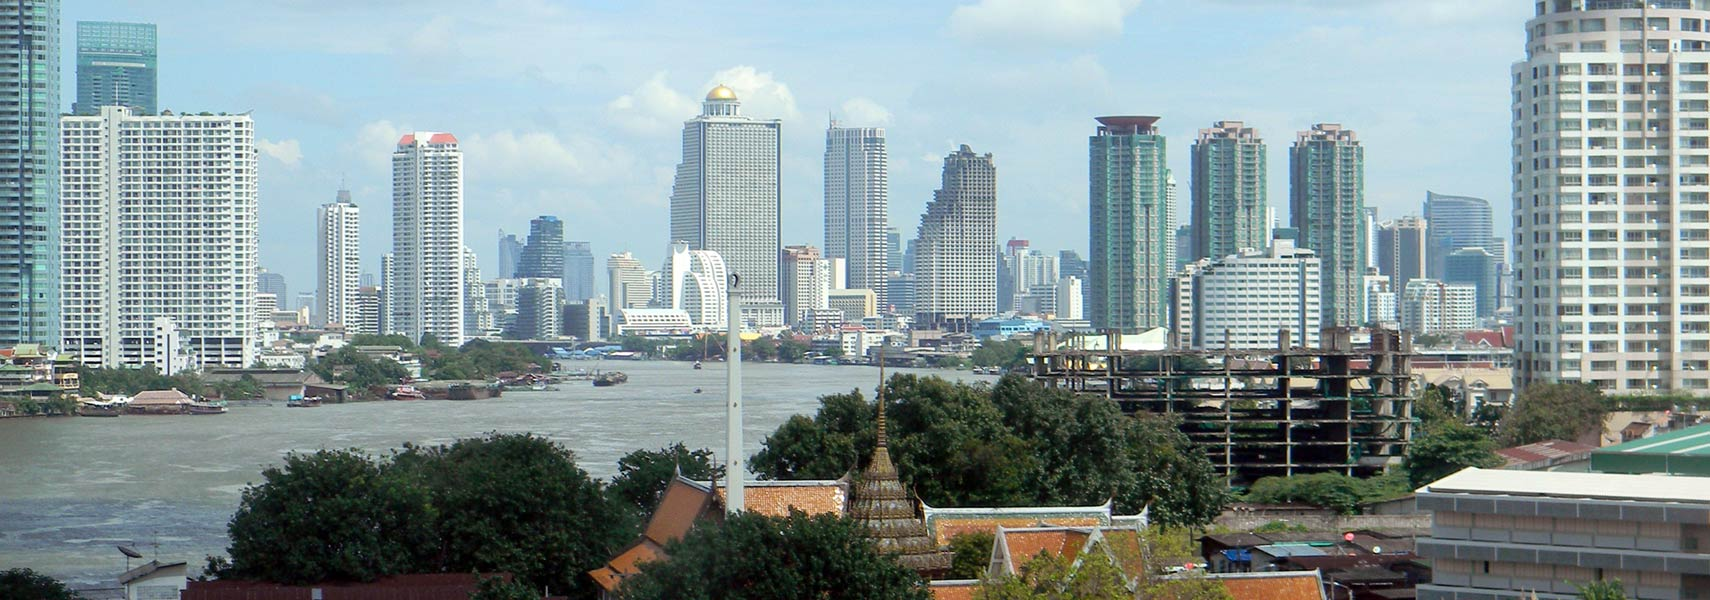 Thailand - Siam - Country Profile - Nations Online Project